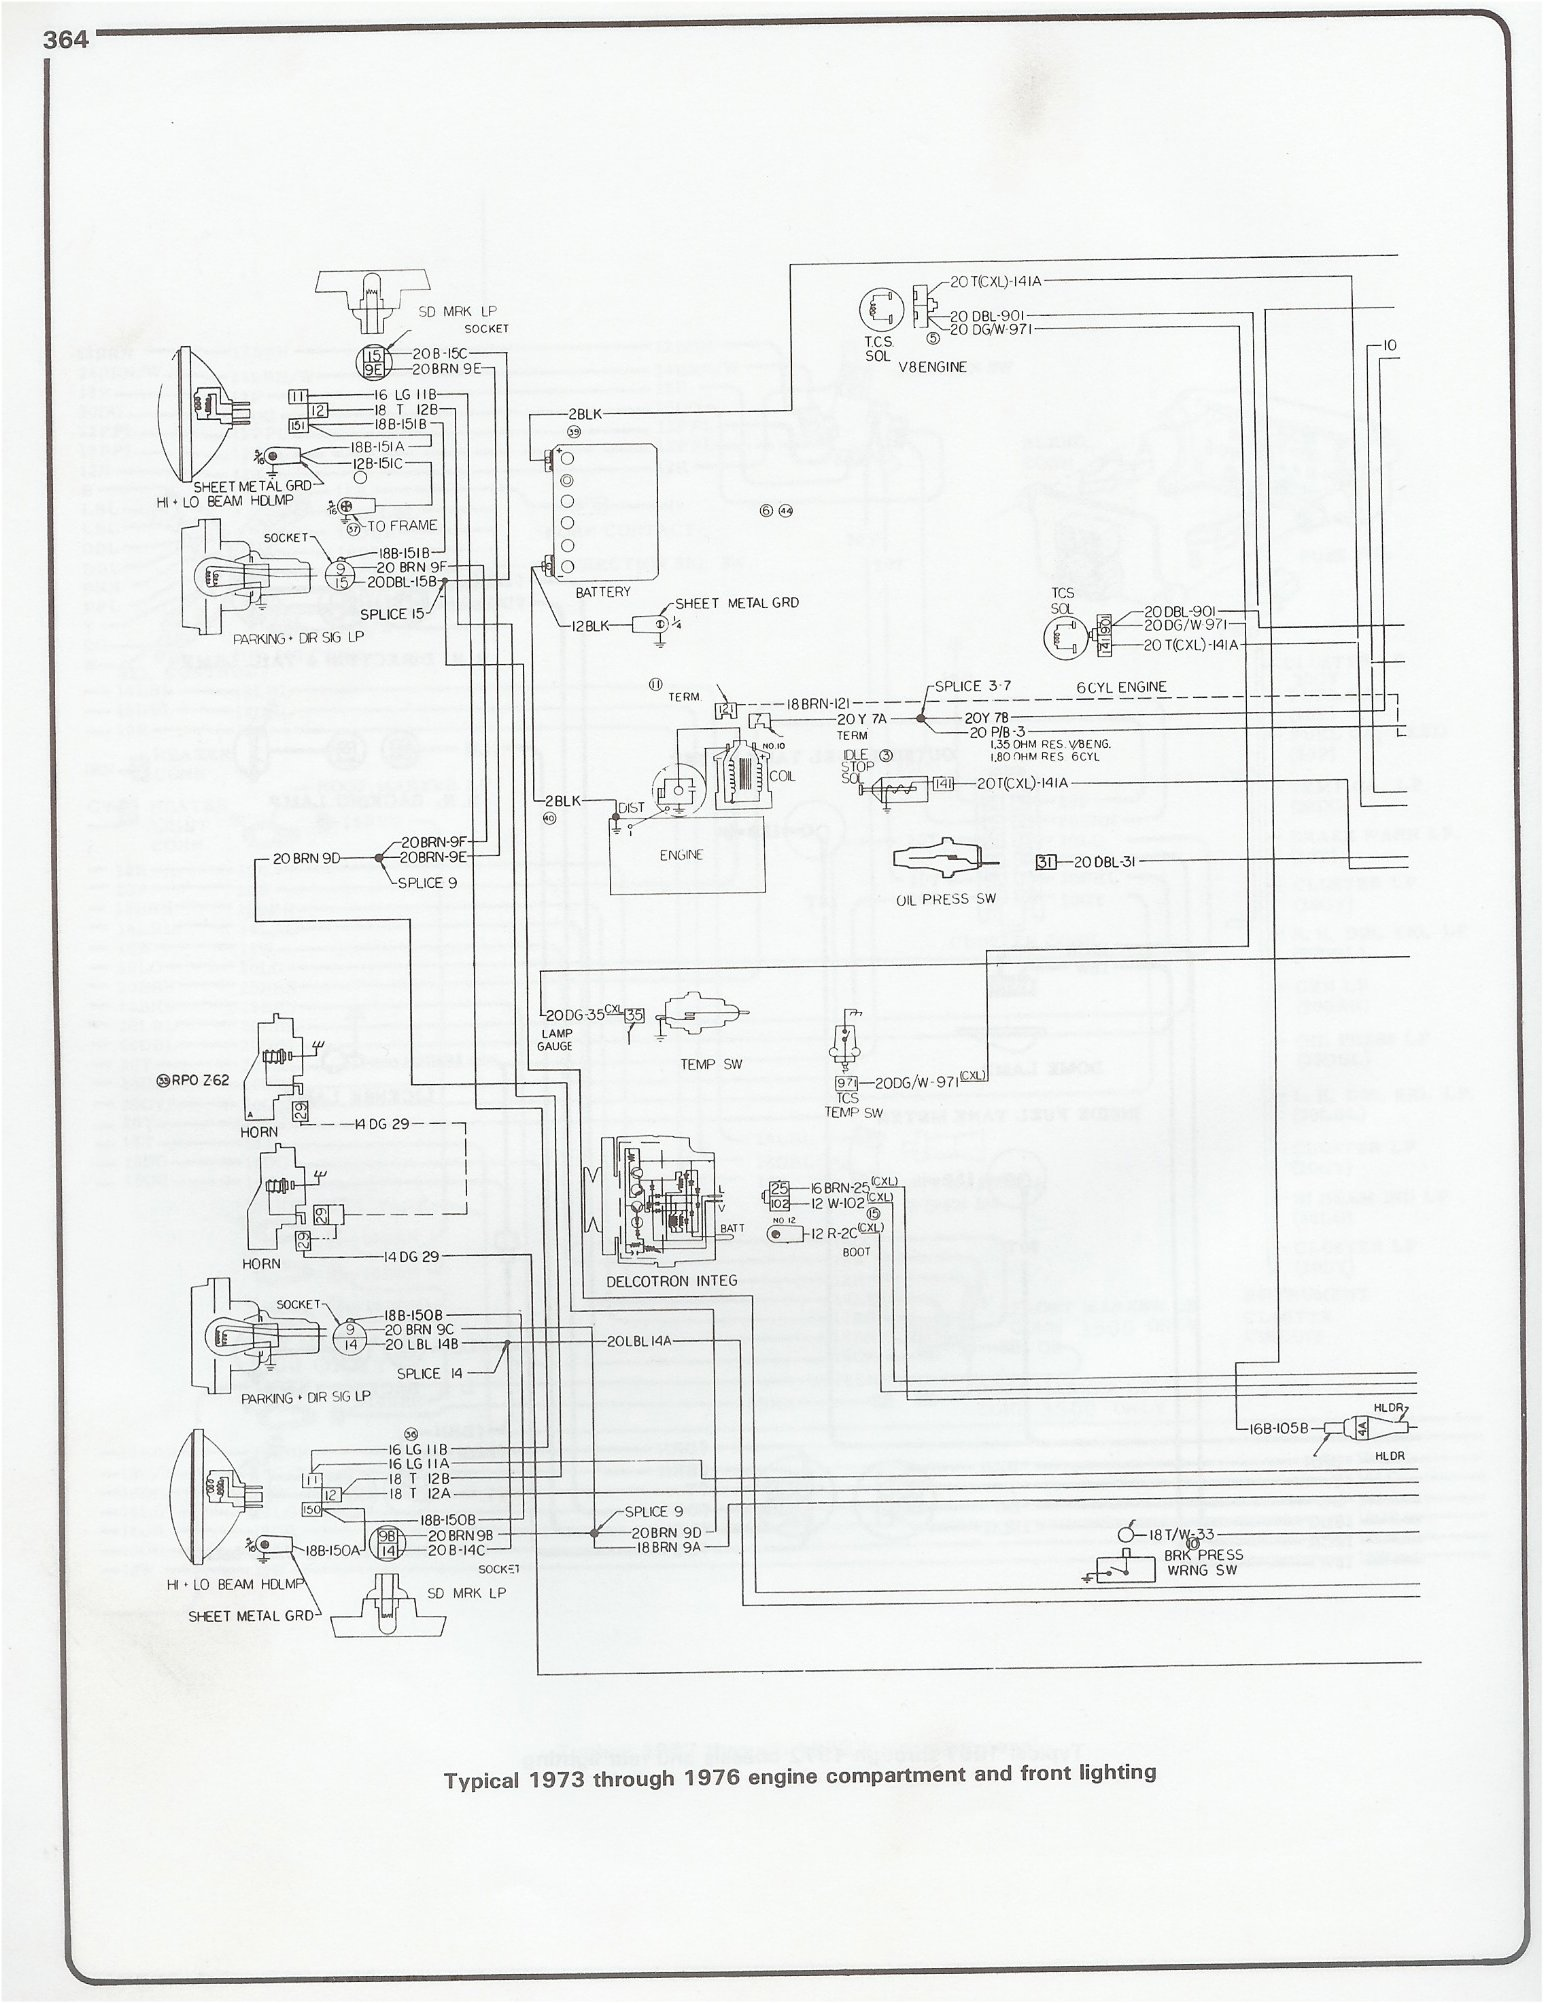 73 79 Ford Truck Fuse Panel Diagram Wiring Will Be A Thing 1979 Chevy Box Images Gallery